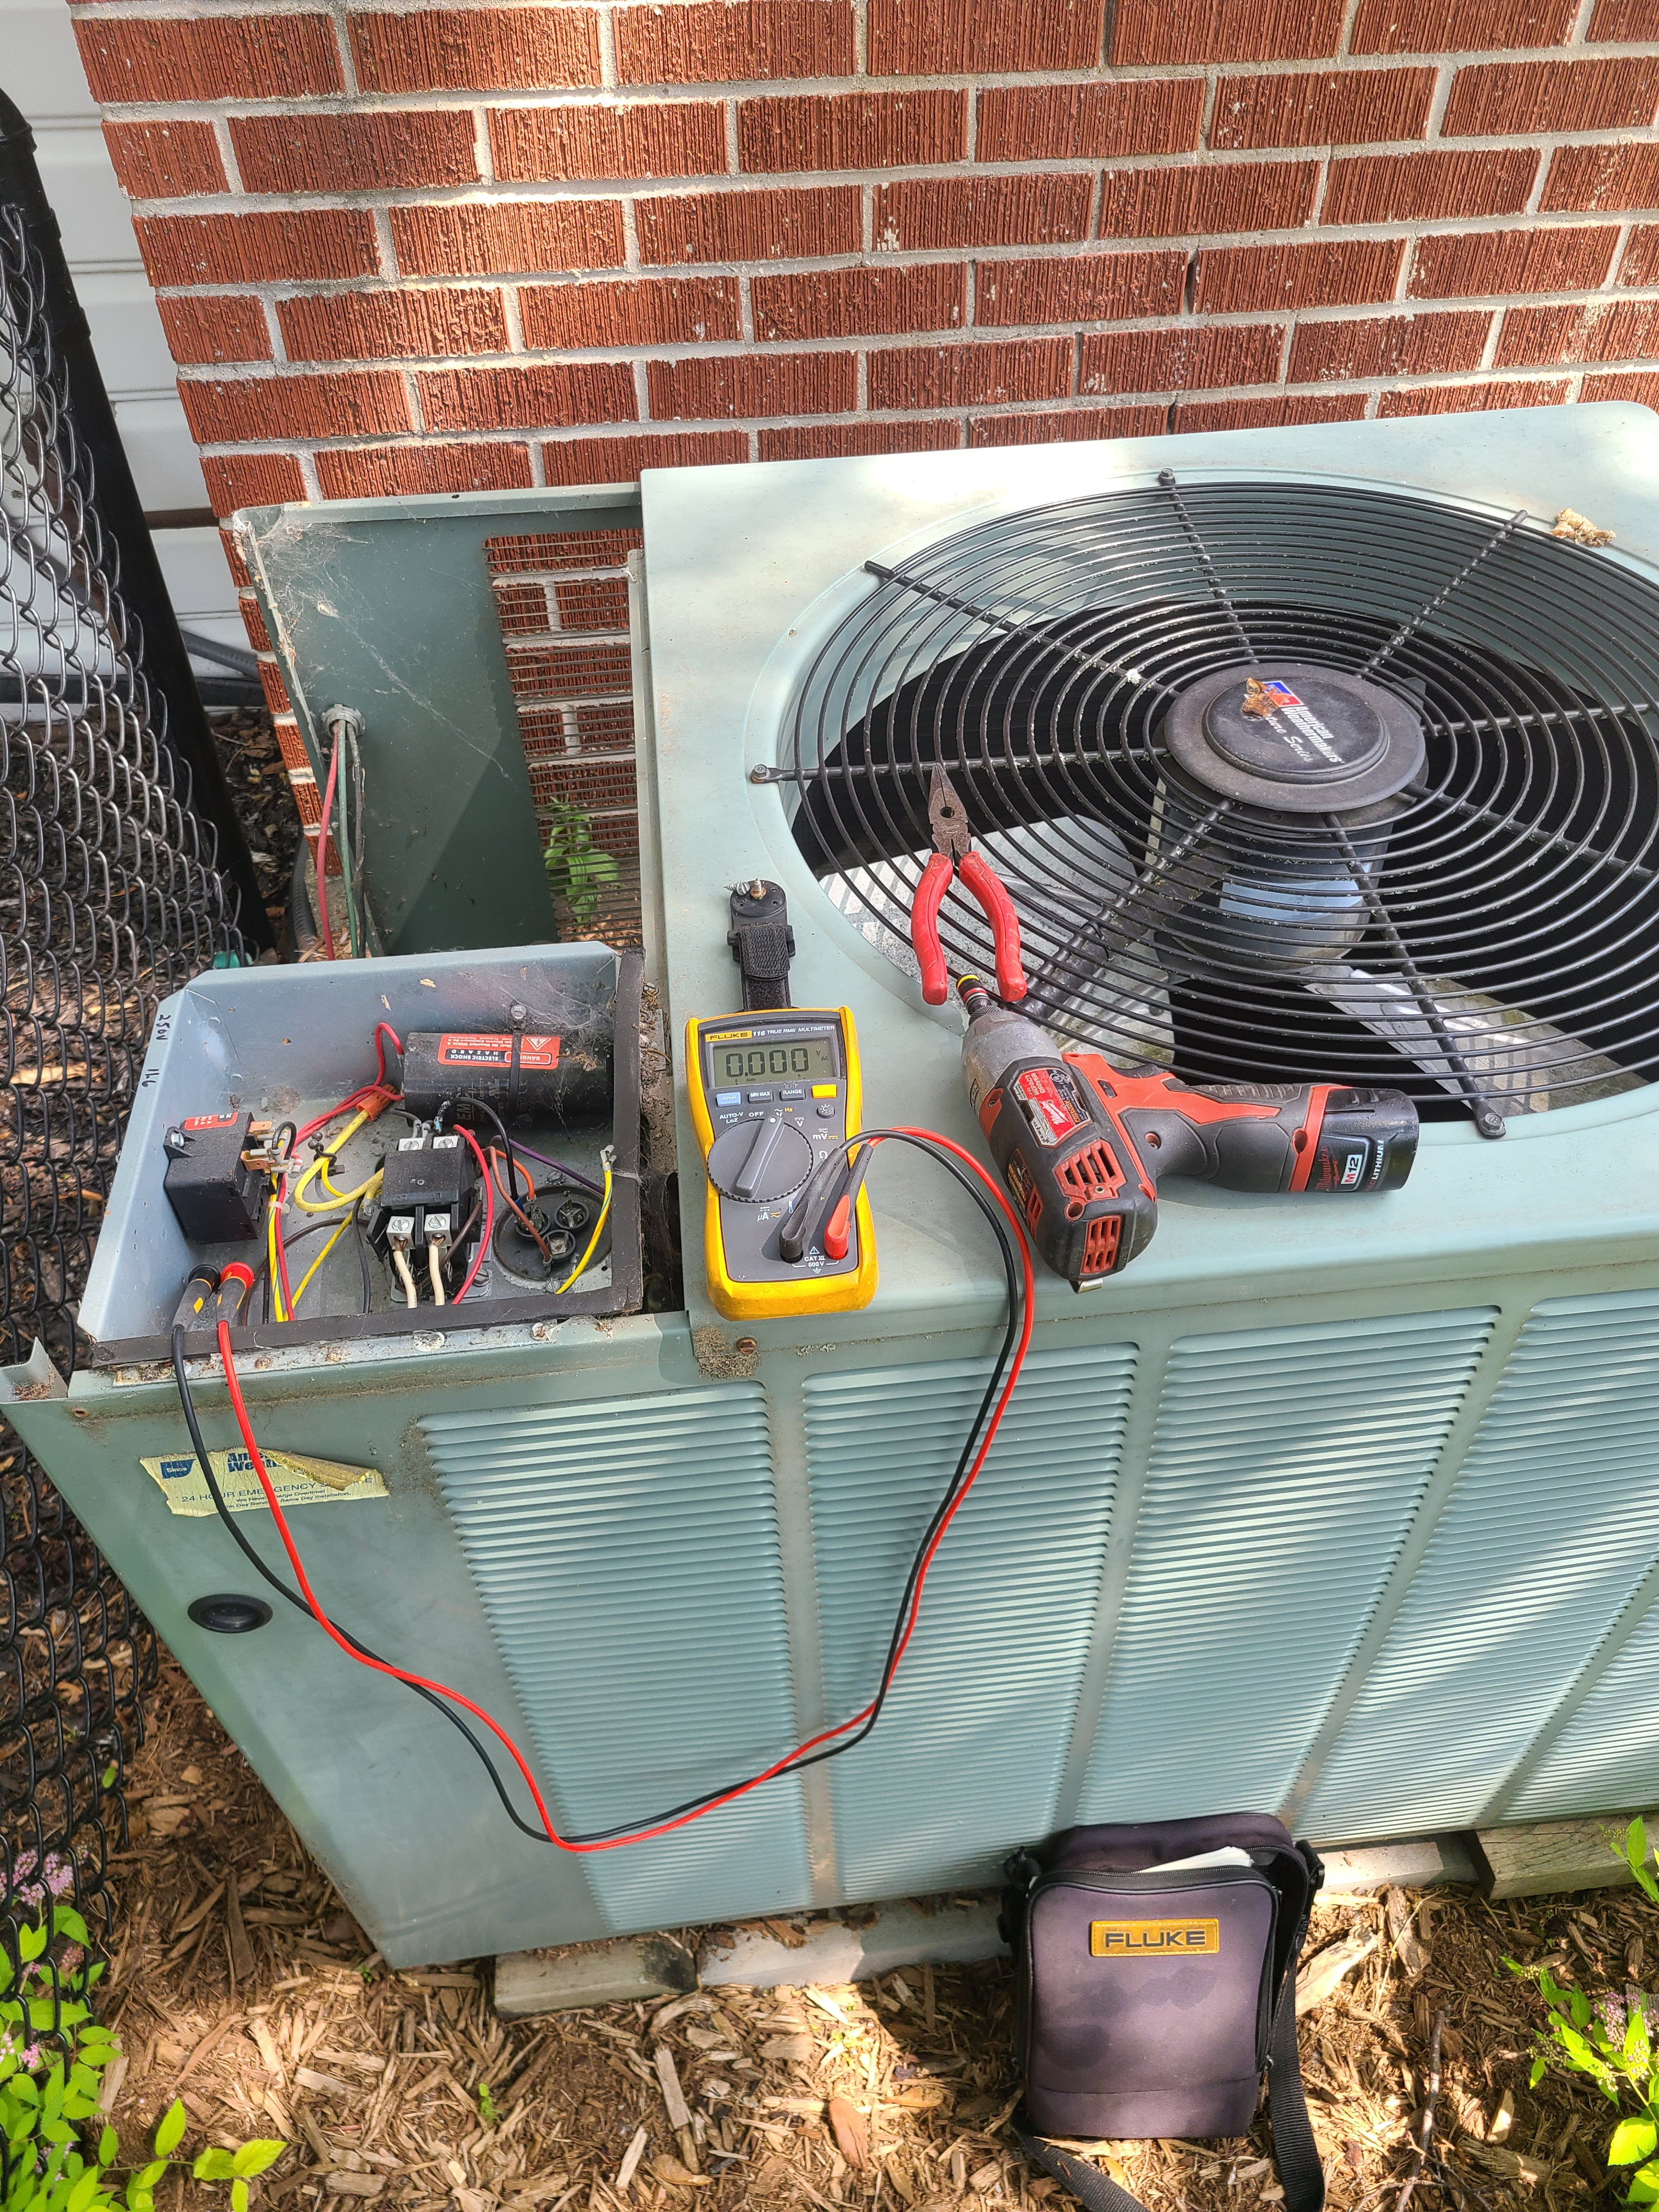 Rheem air conditioning system cleaned and checked. Ready for summer!